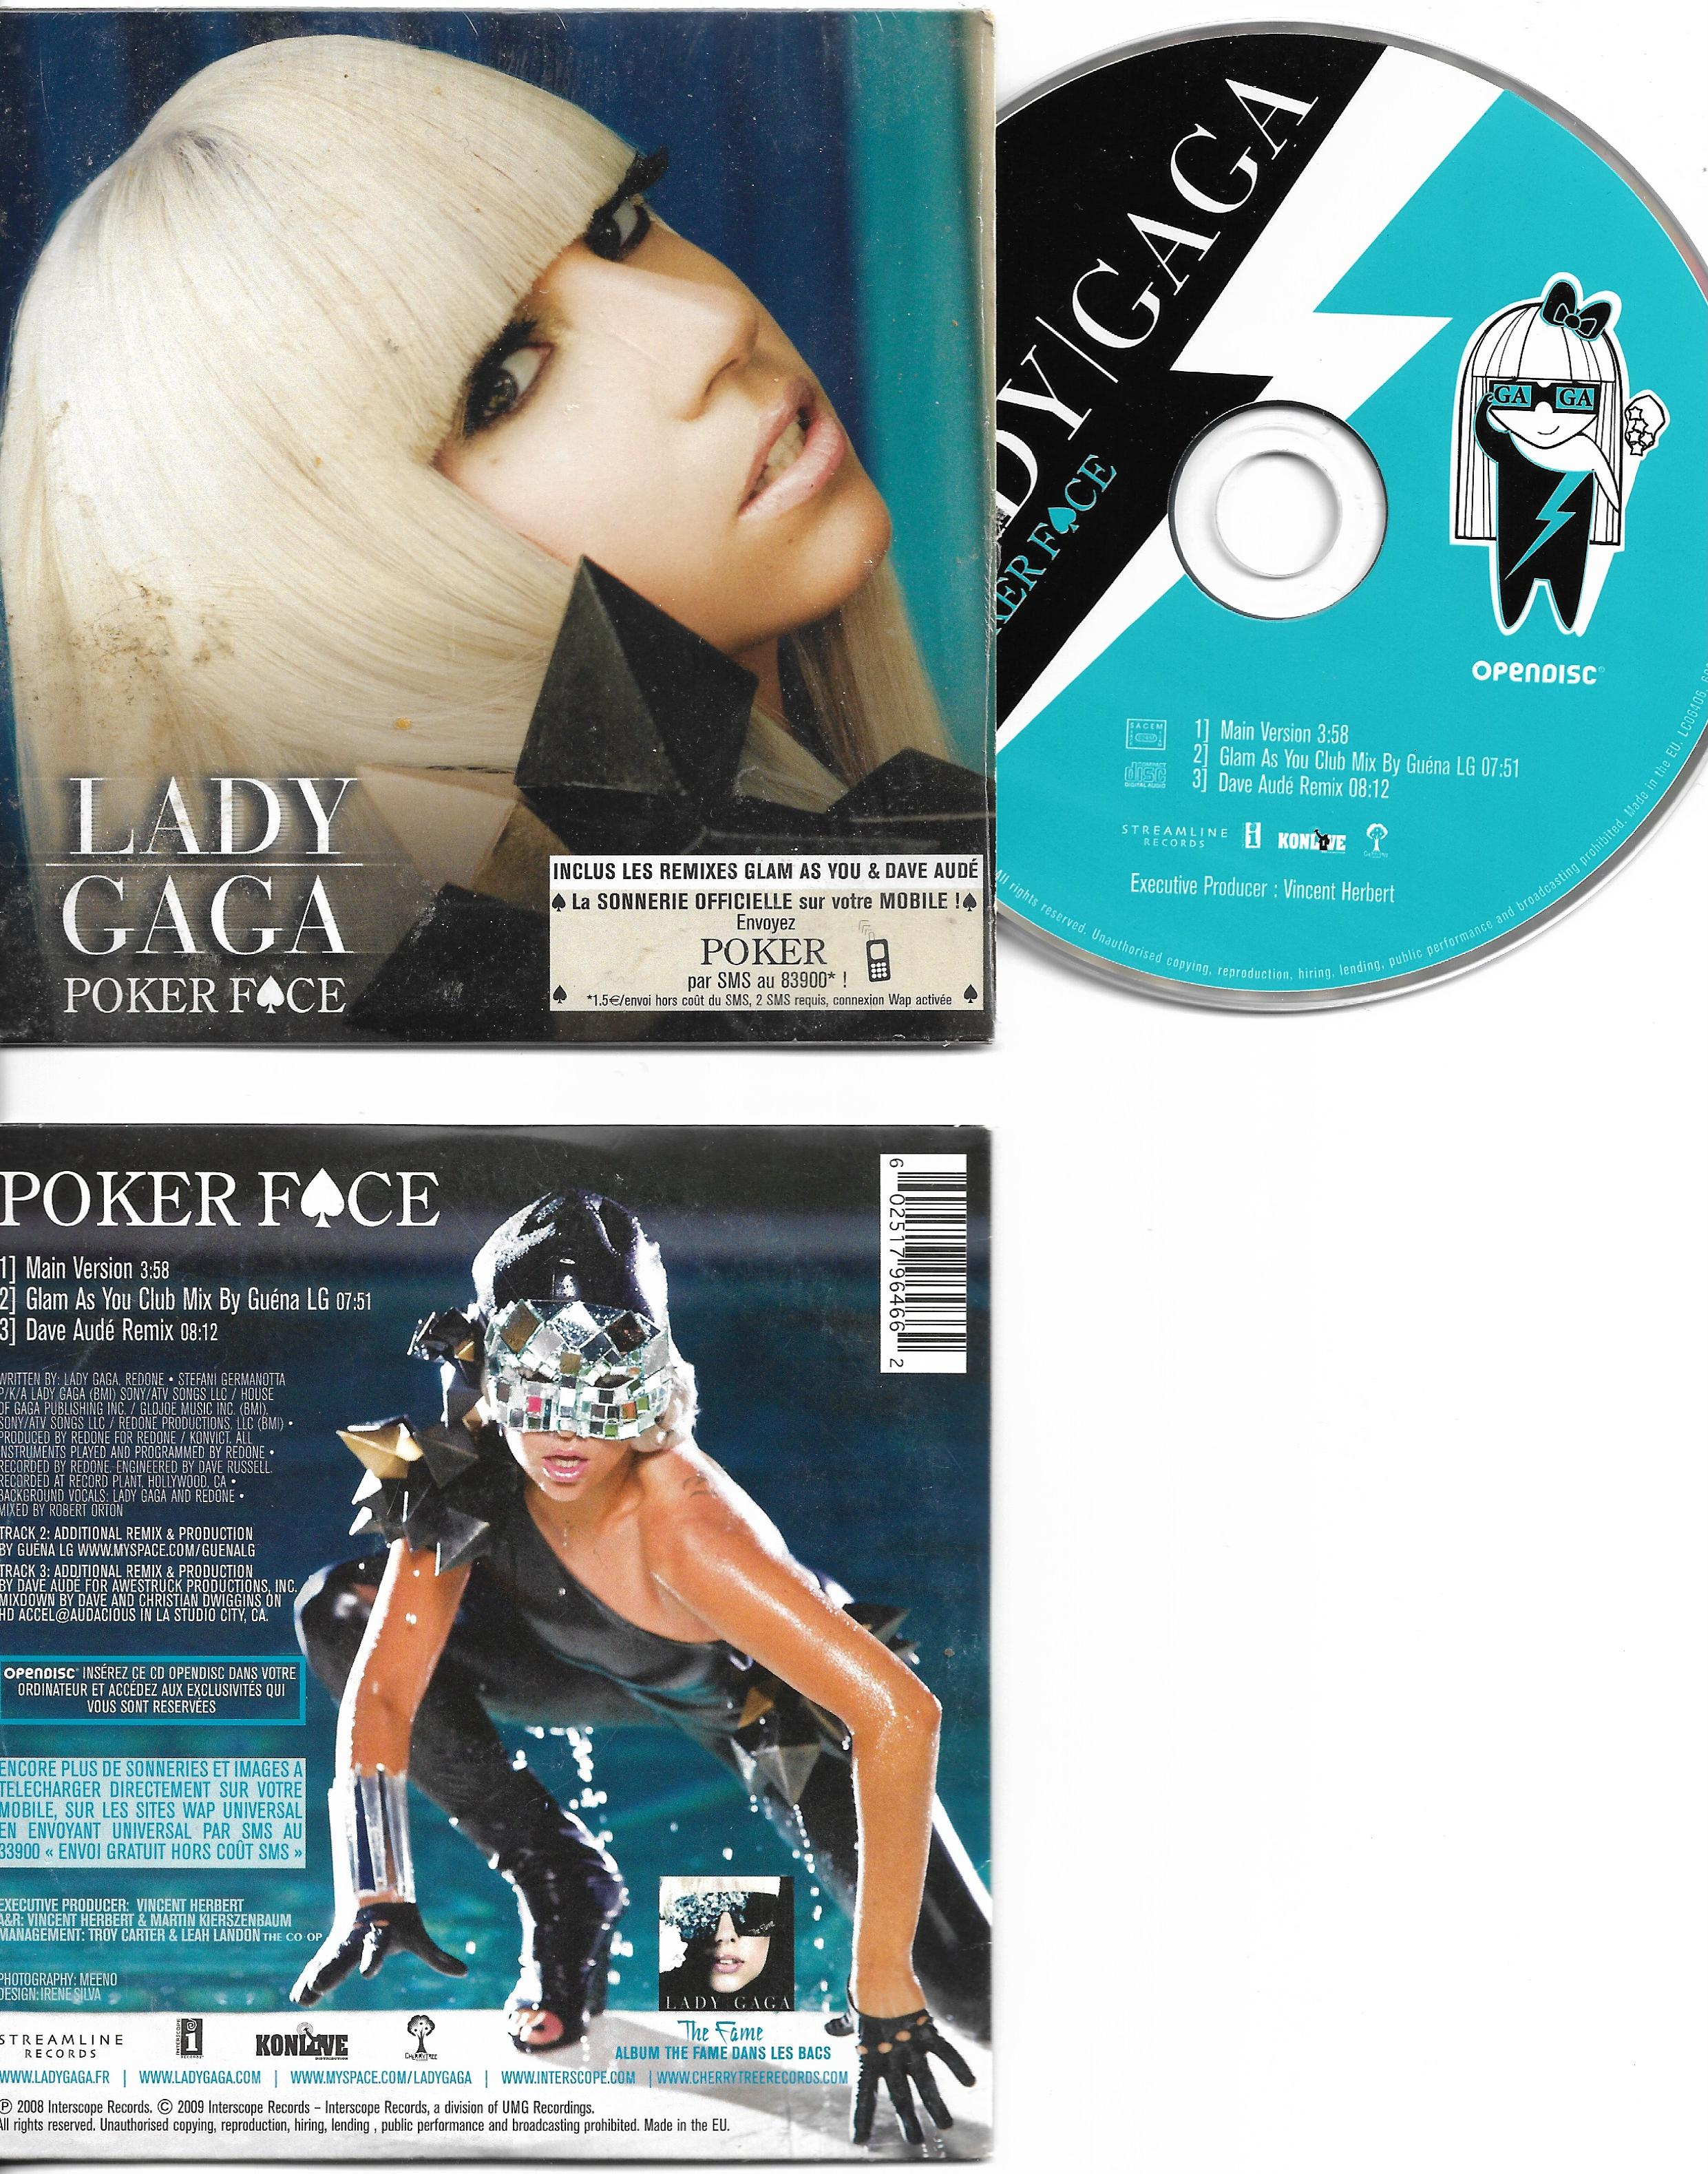 LADY GAGA - Poker face CARD SLEEVE 3 tracks - France - - CD single